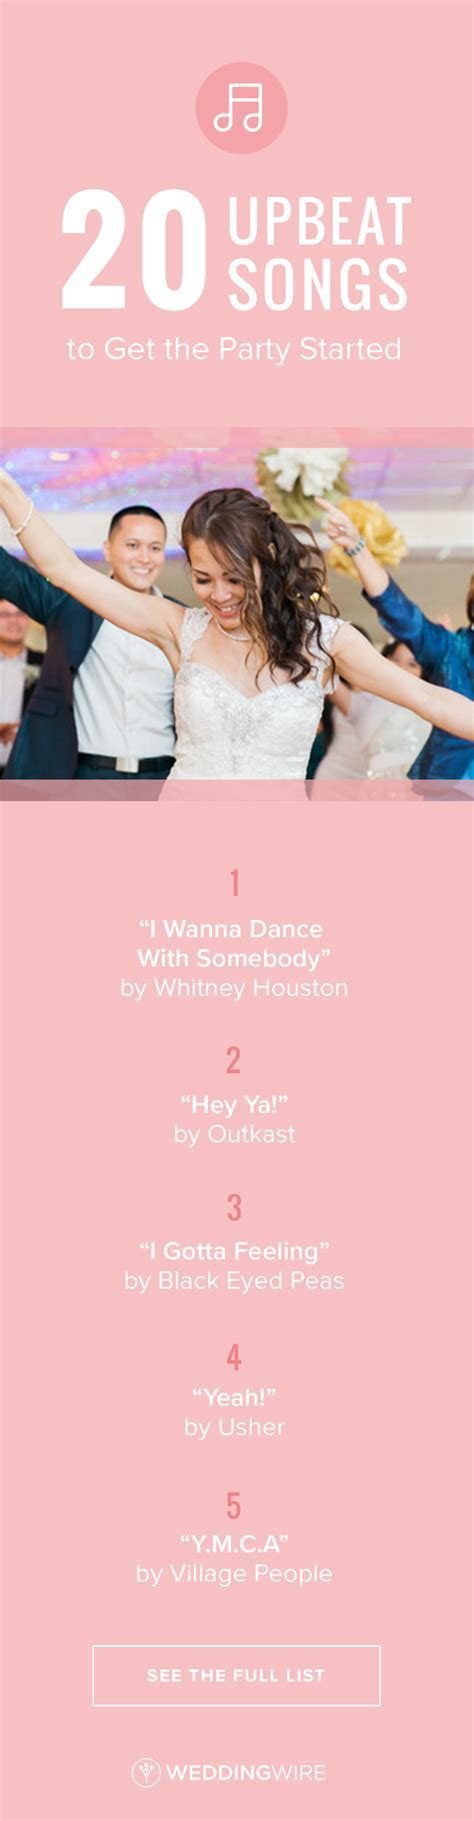 20 Upbeat Songs to Get the Party Started   Wedding